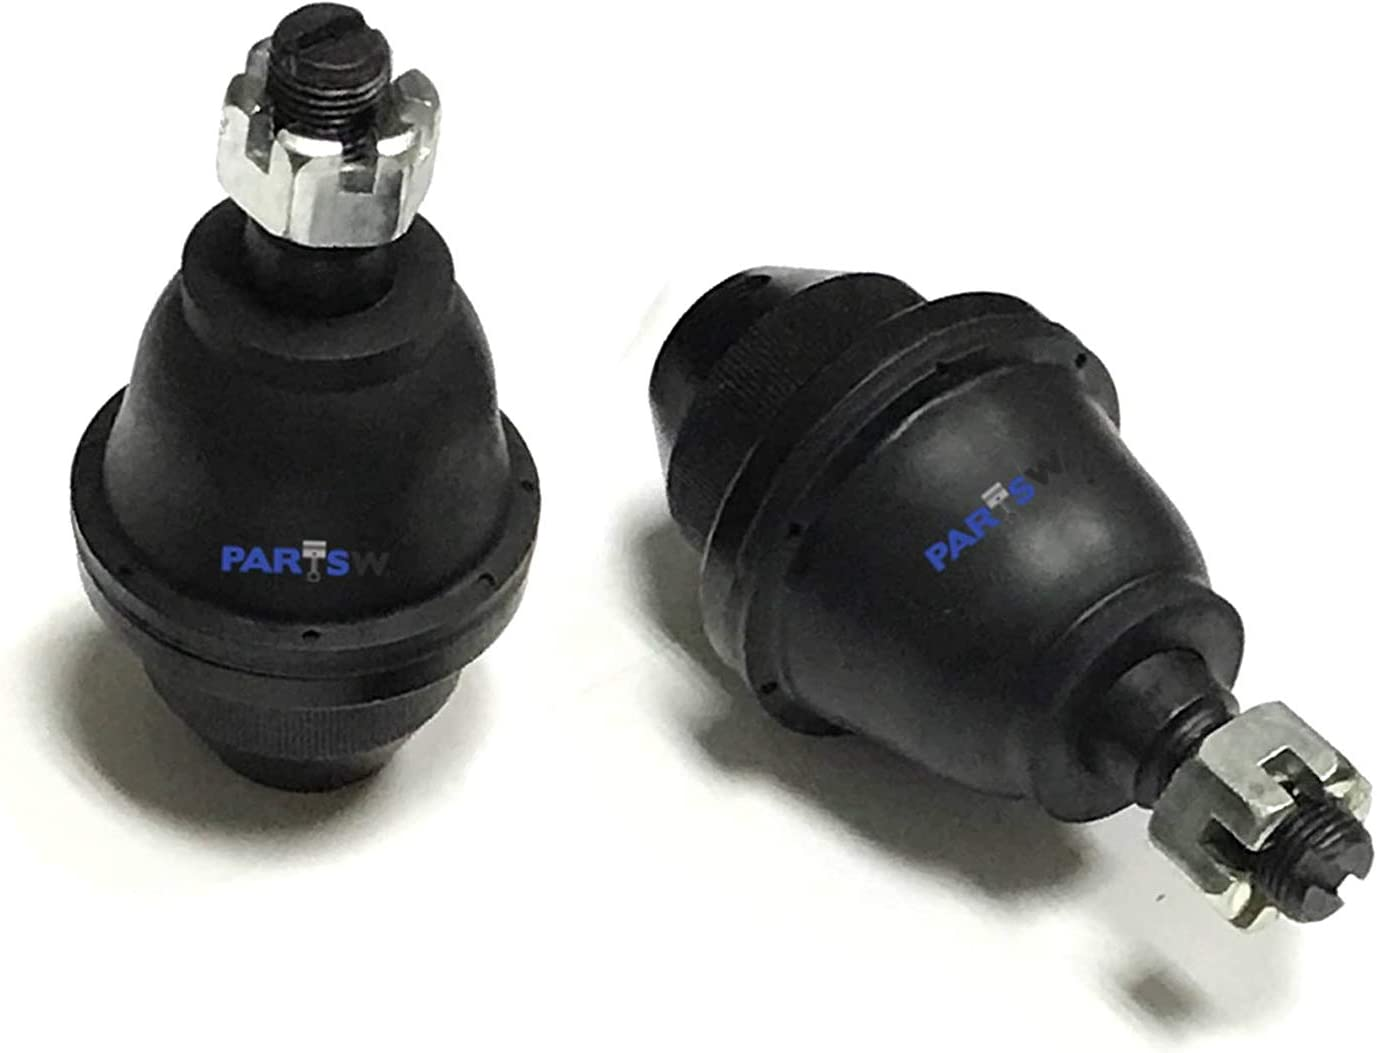 2 Pc Suspension Front Ball Joints Max Max 43% OFF 73% OFF Lower